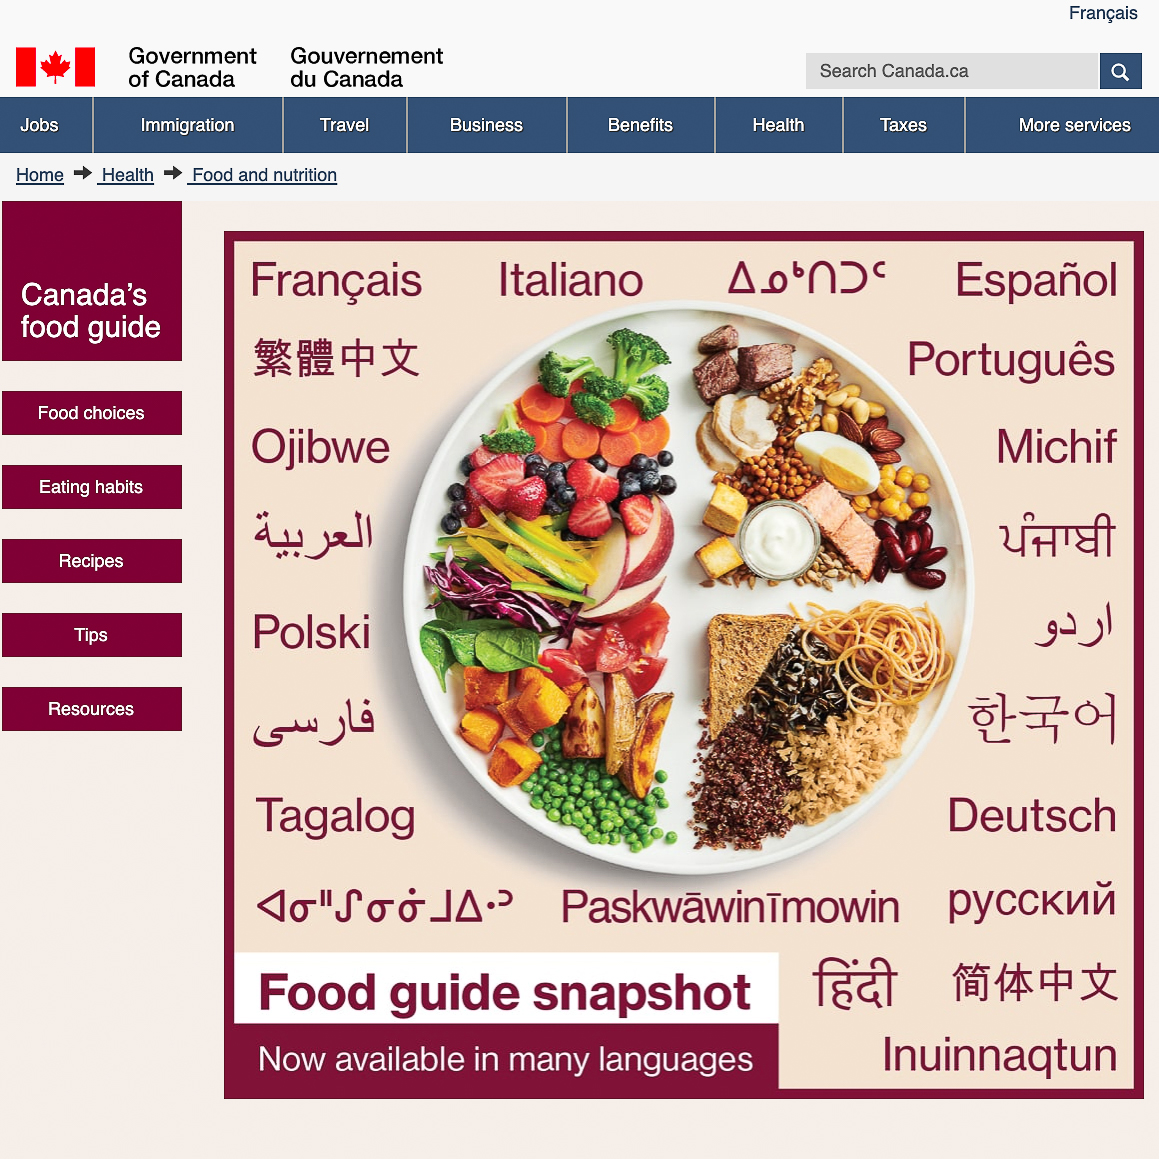 Canada's Food Guide plate with fruits and vegetables, fish, beans, meat and poultry, pasta, bread, rice and grains written in different languages